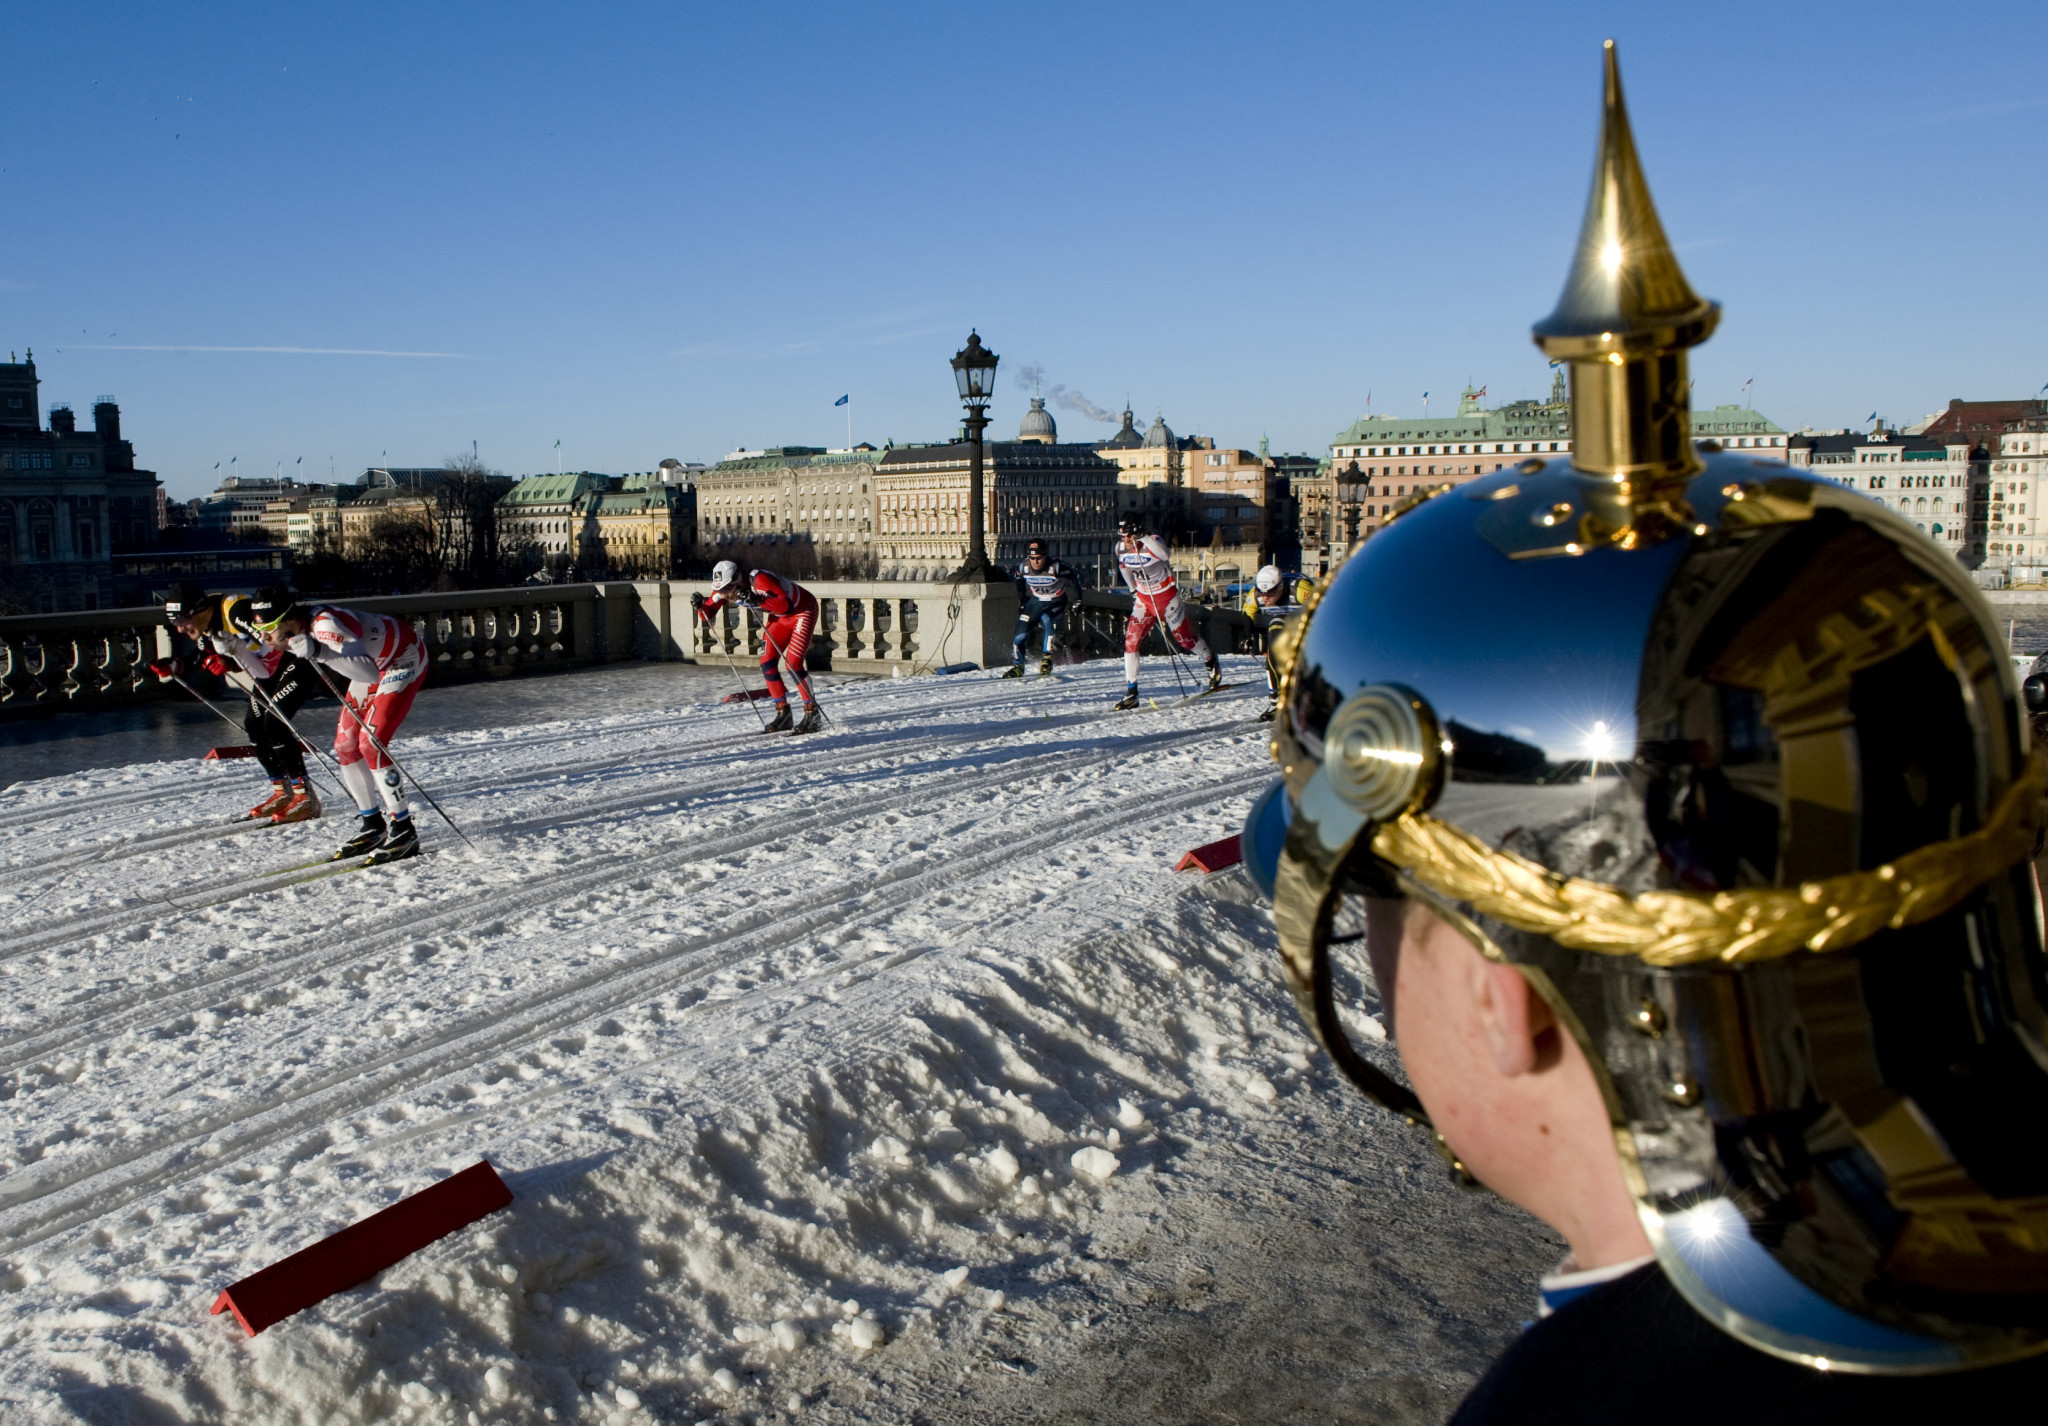 Stockholm is one of two candidates remaining in the 2026 Winter Olympic race ©Getty Images